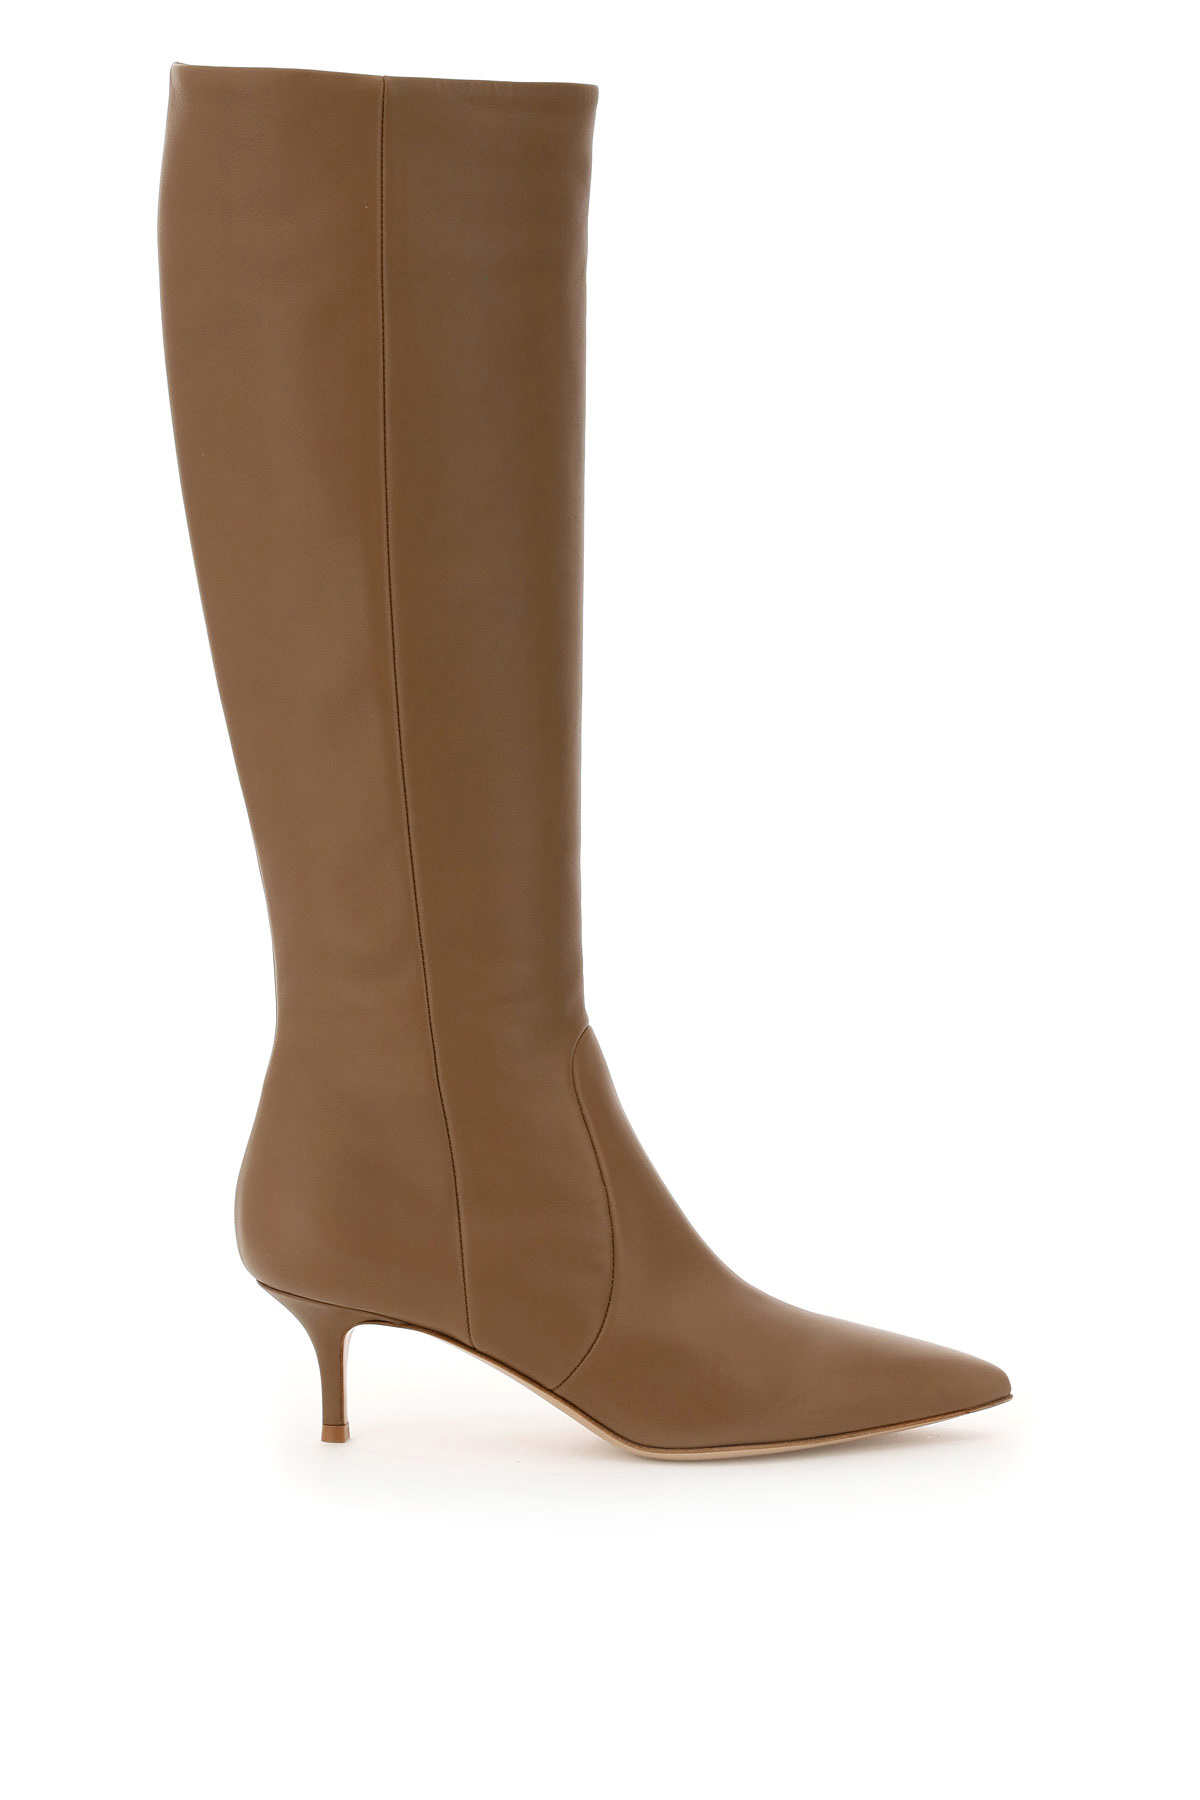 GIANVITO ROSSI JANE LEATHER BOOTS 40 Beige, Brown Leather